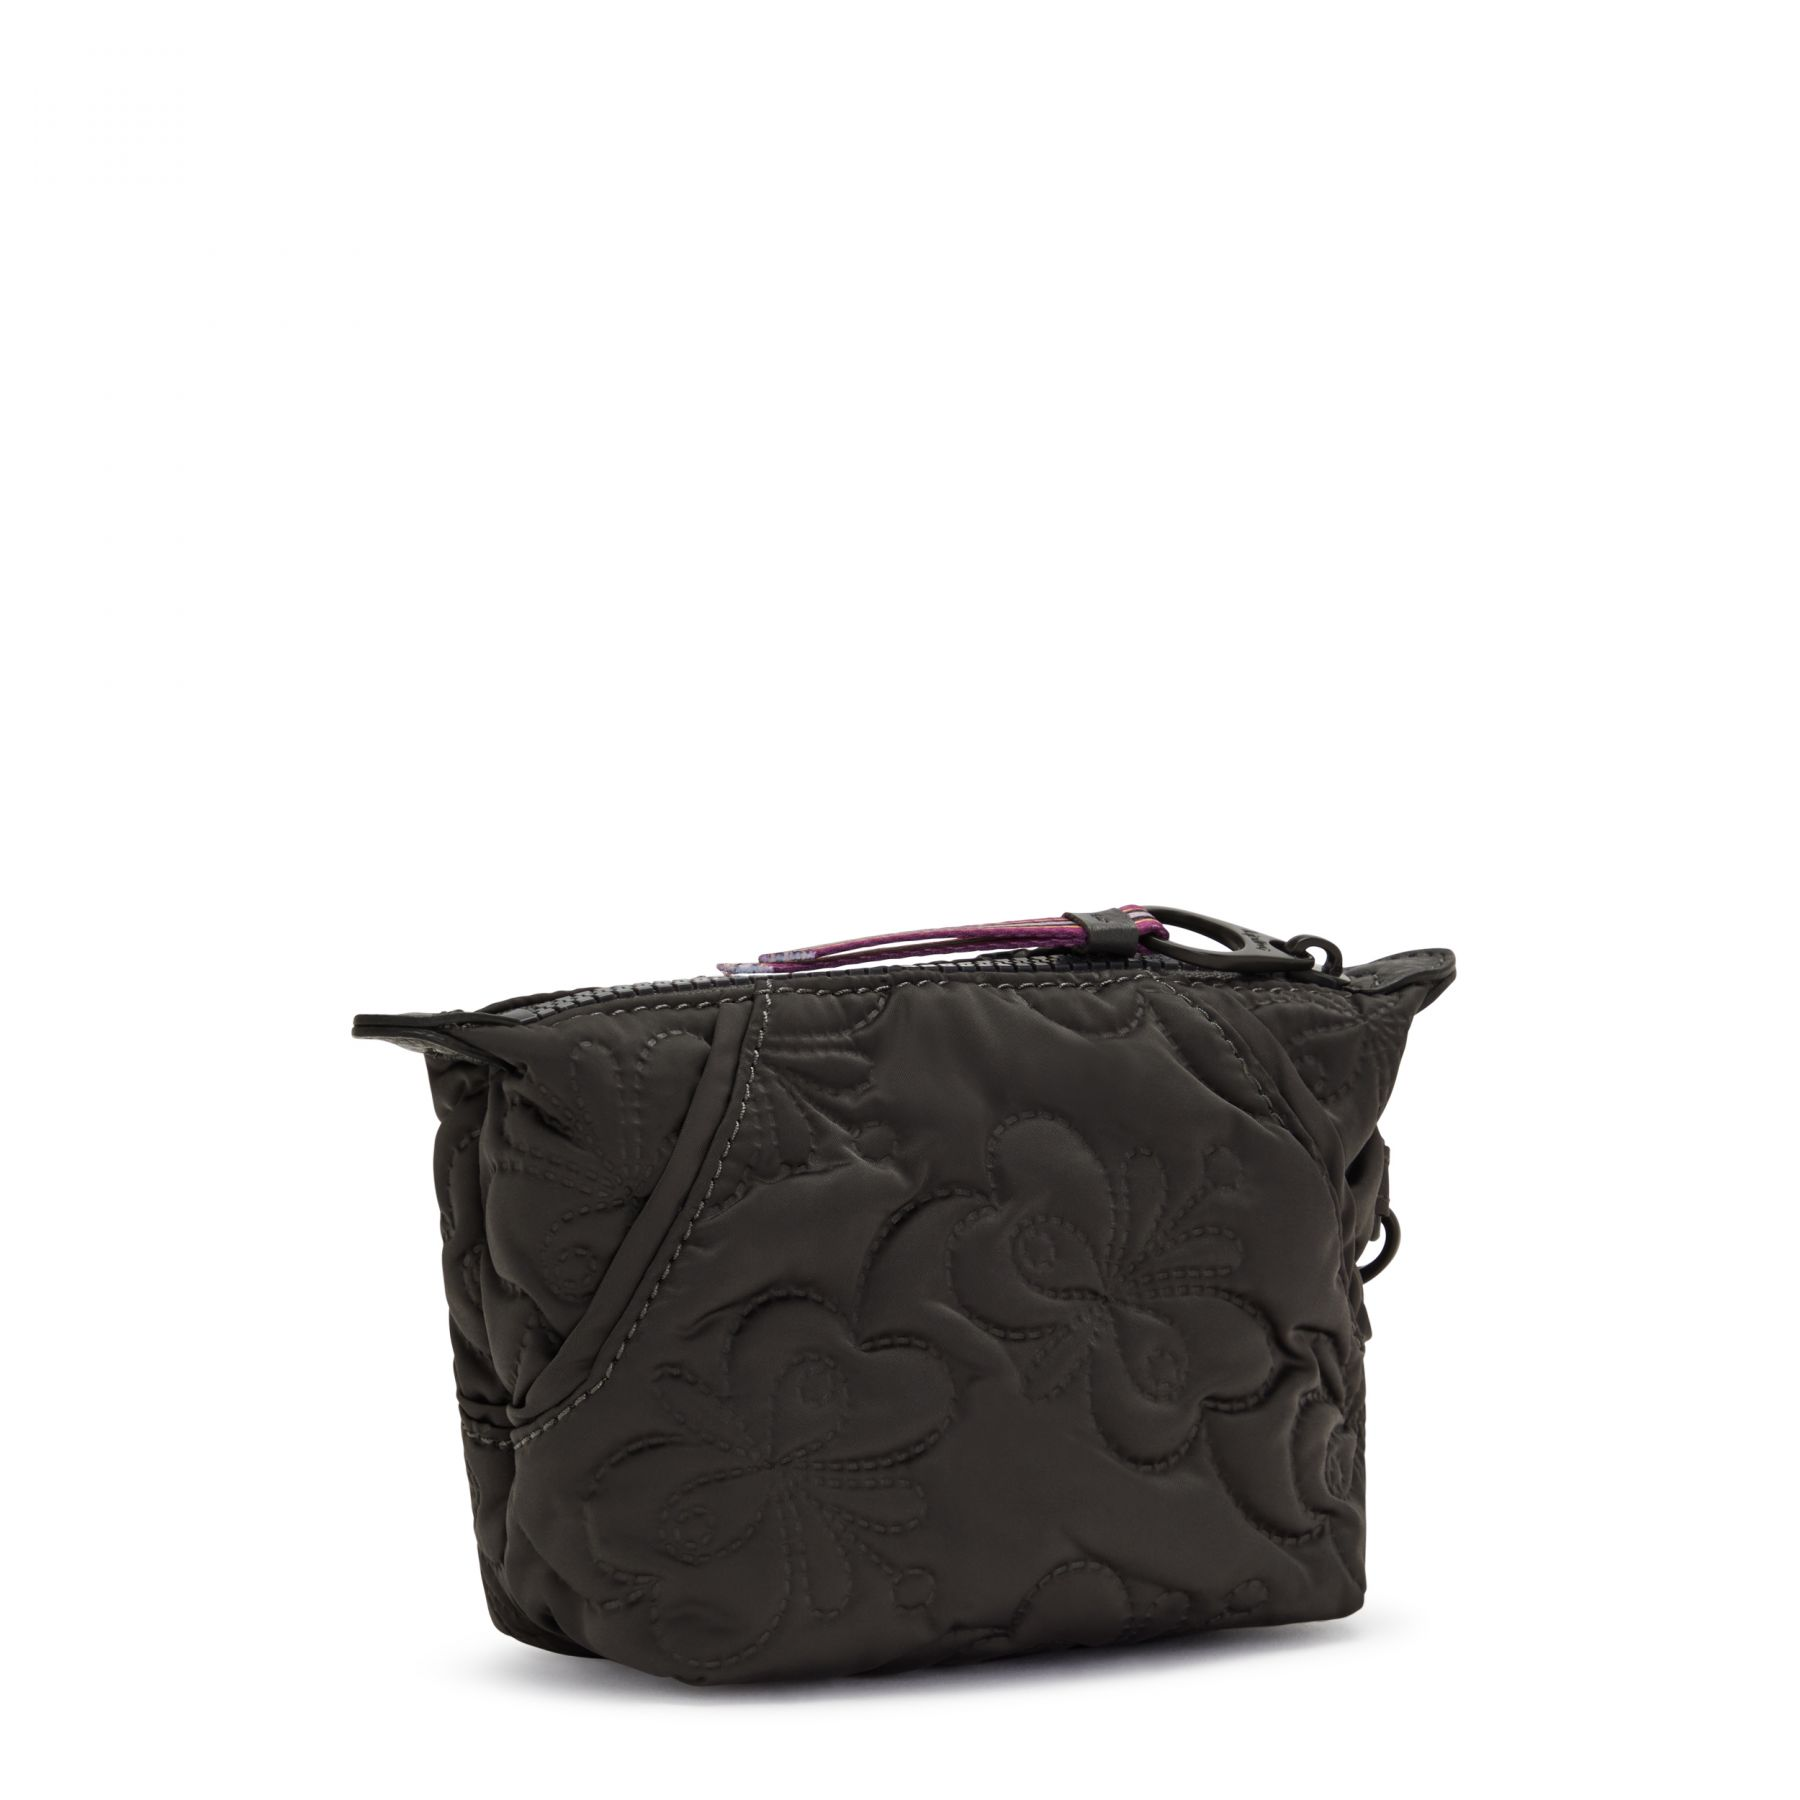 ART POUCH MINI ACCESSORIES by Kipling - Back view